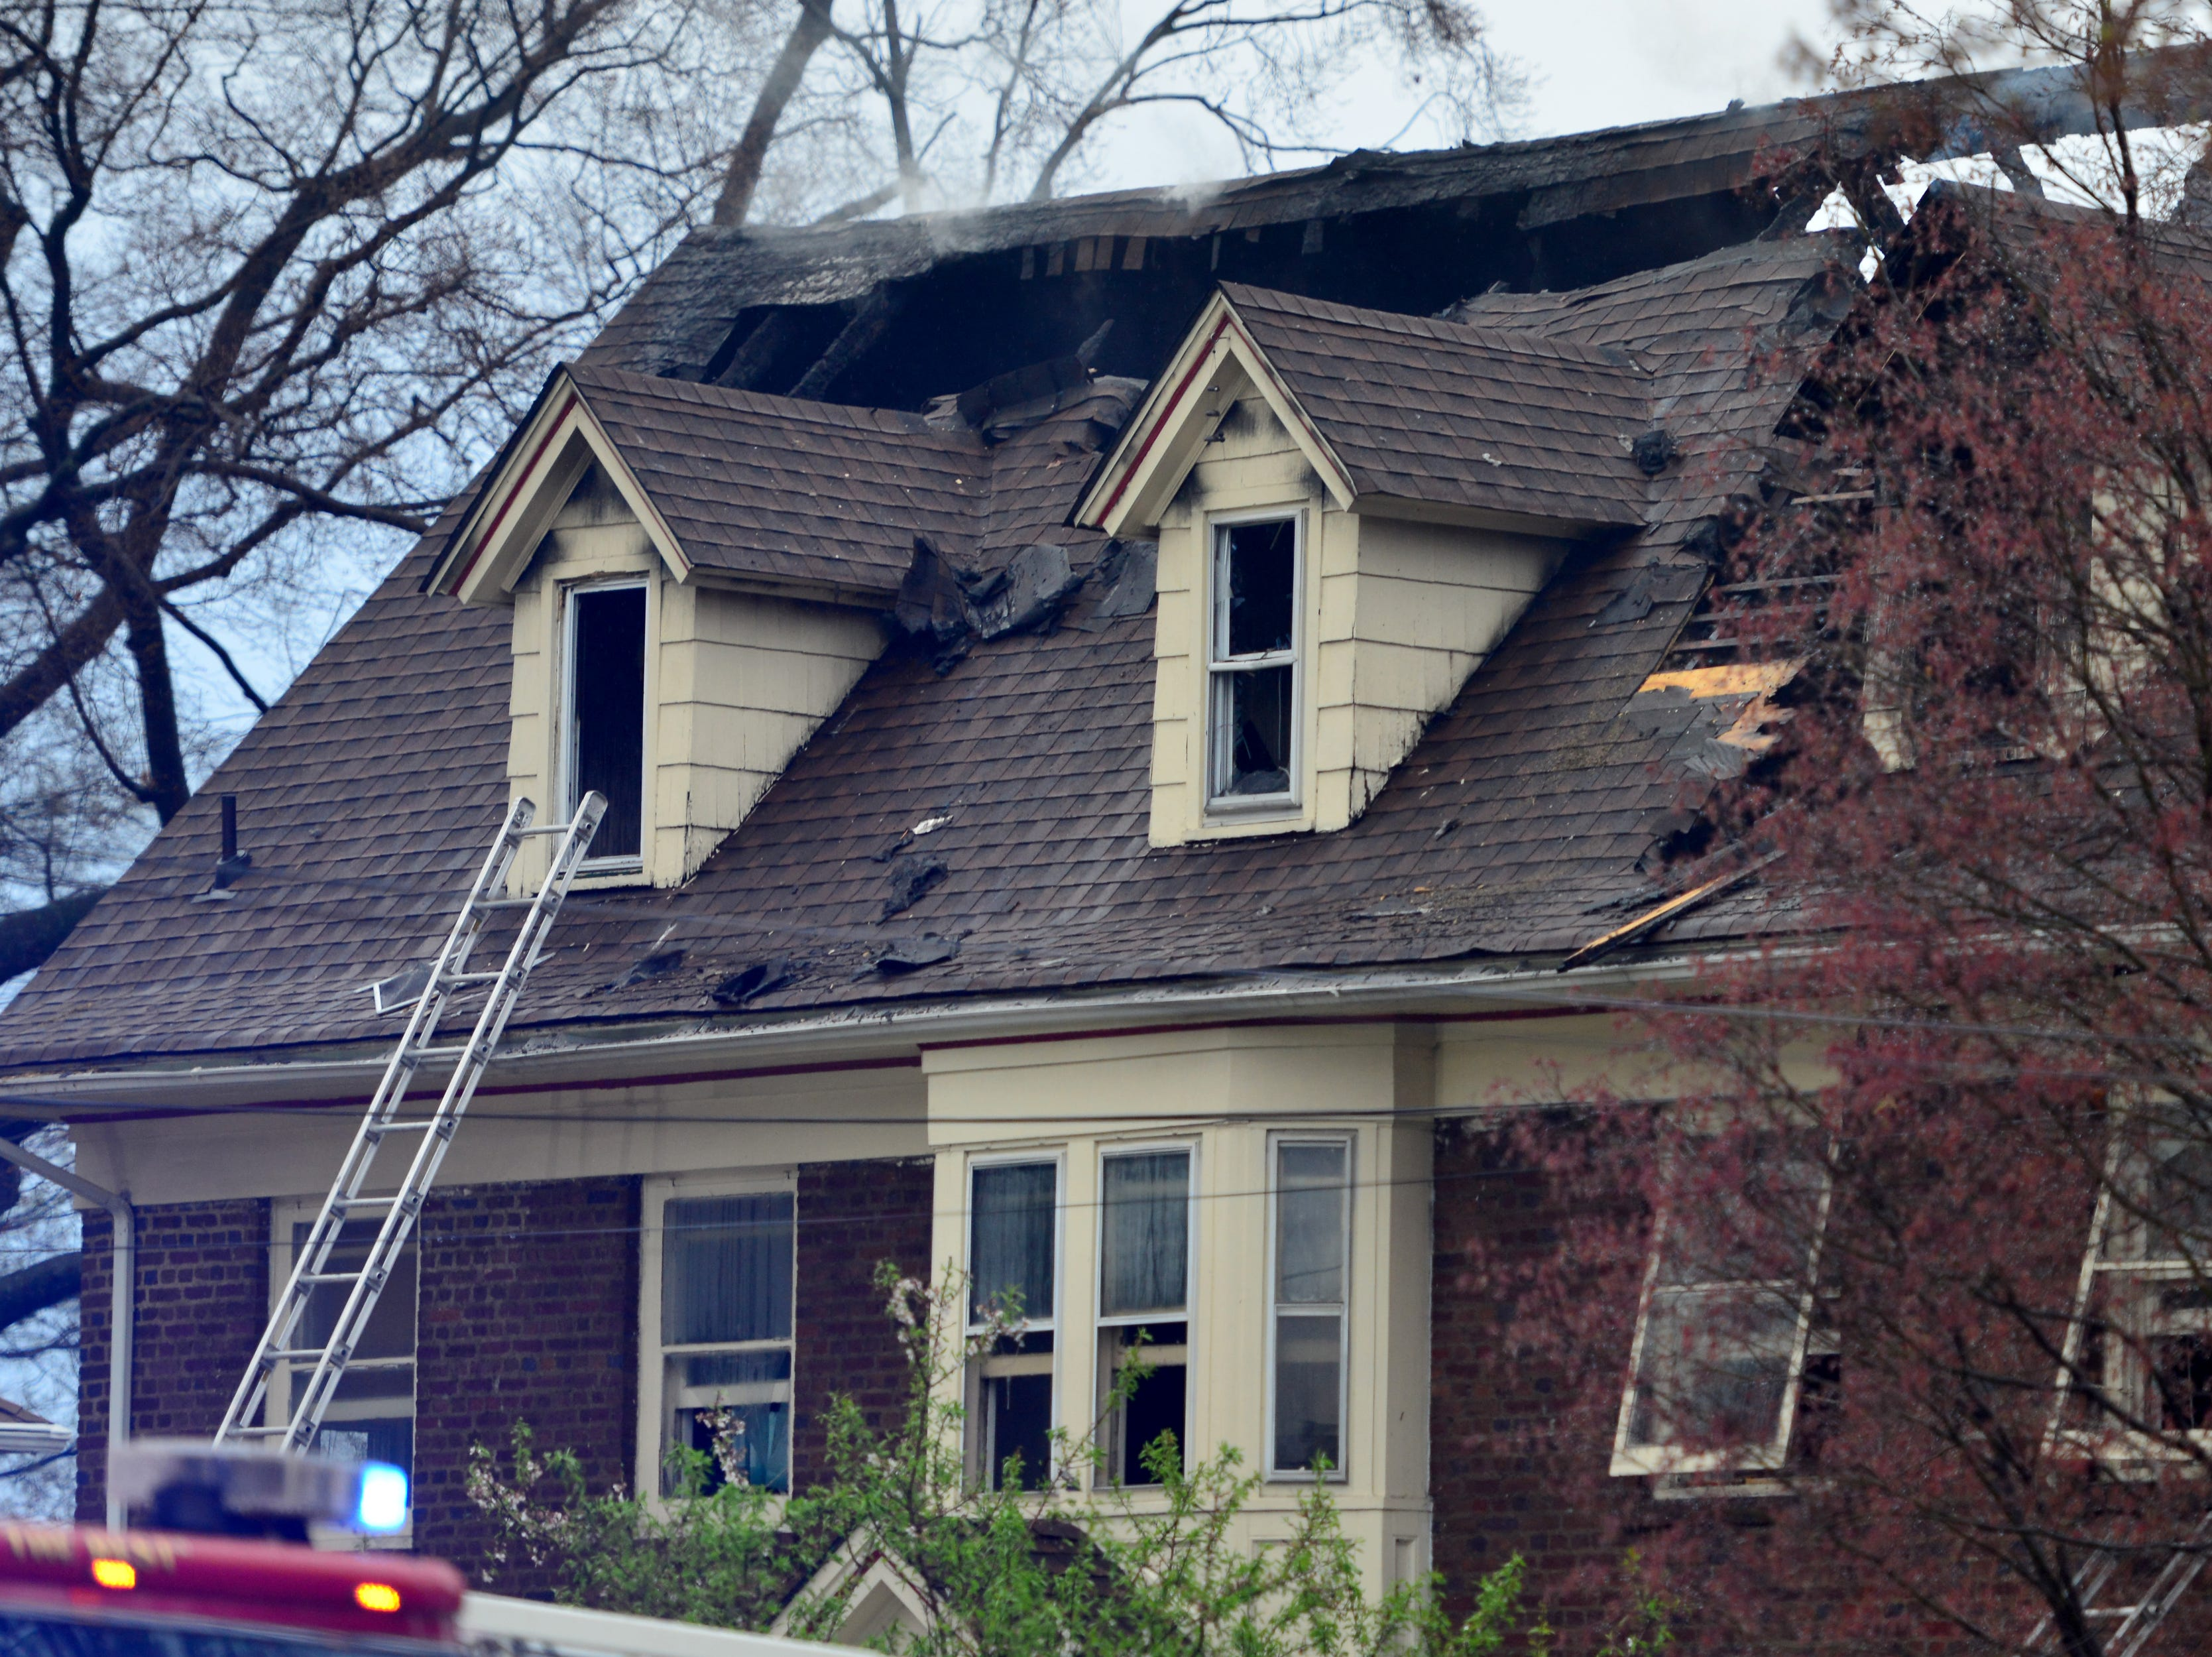 Fire destroys a home on Ridge Rd in Rutherford on Monday April 15, 2019. Fire companies from surrounding towns assisted in putting out the blaze.